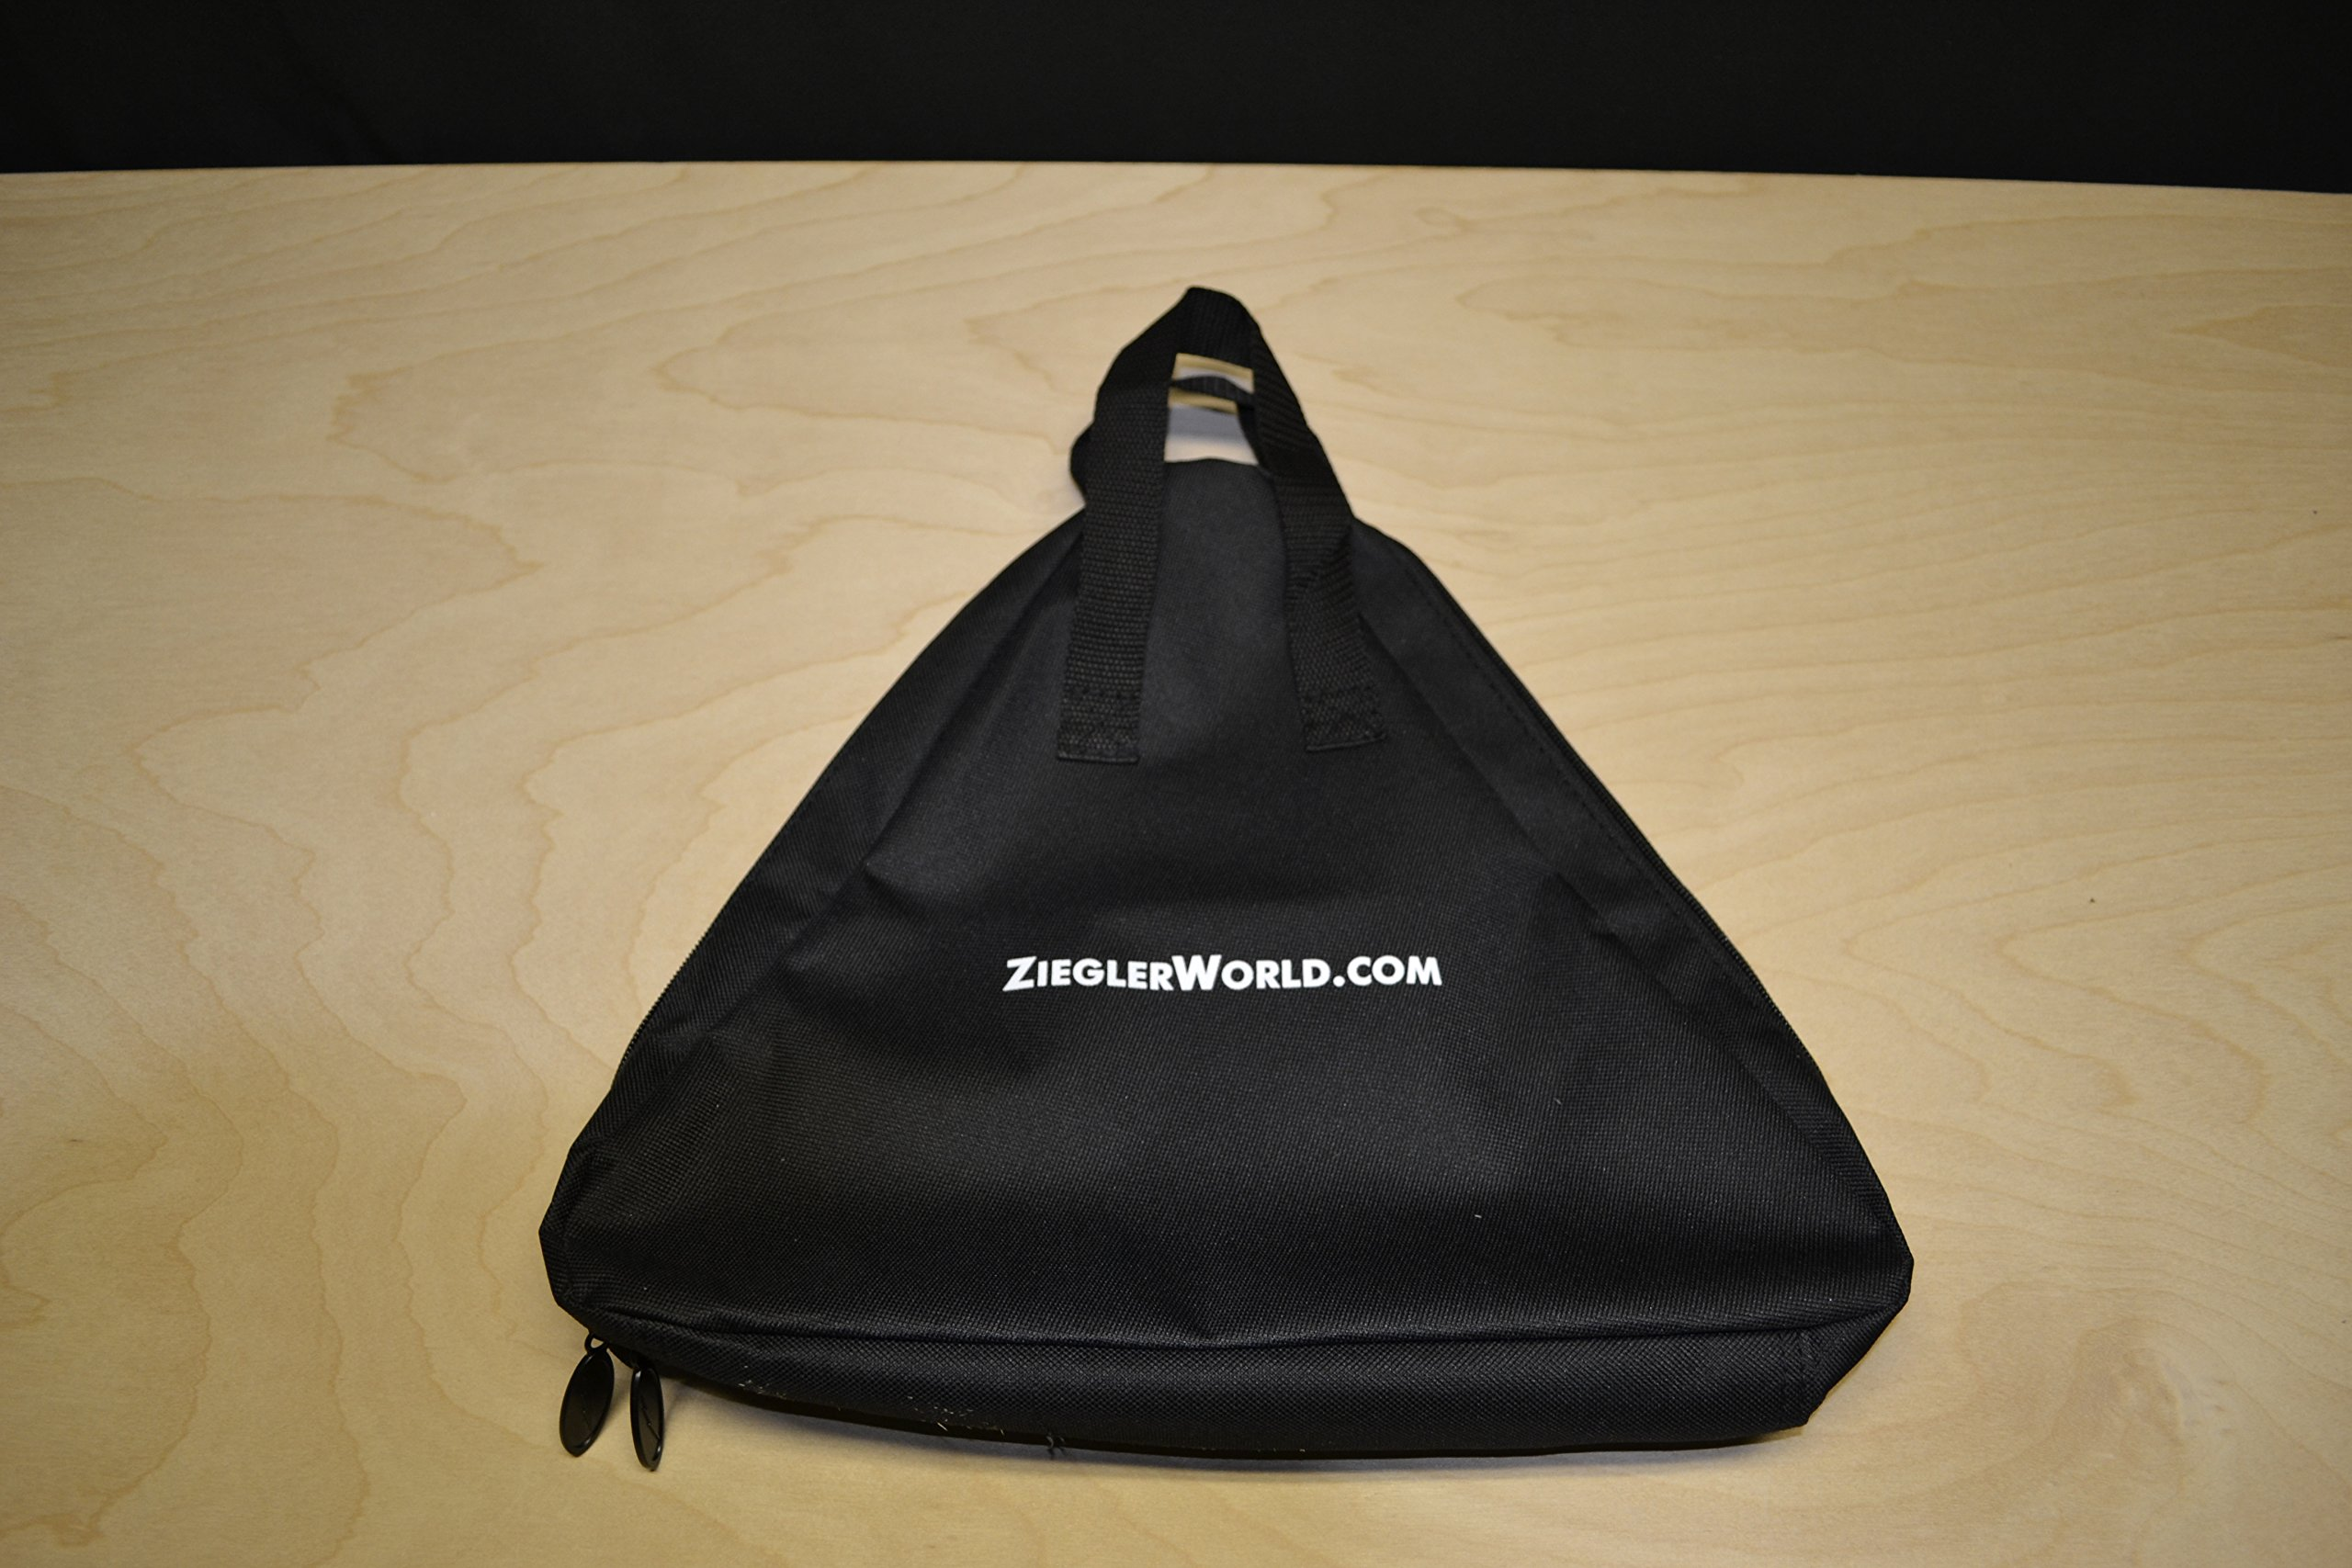 Zieglerworld Table Shuffleboard Bowling Carrier - Storage Bag (Bag Only No Pins/Pinsetter)